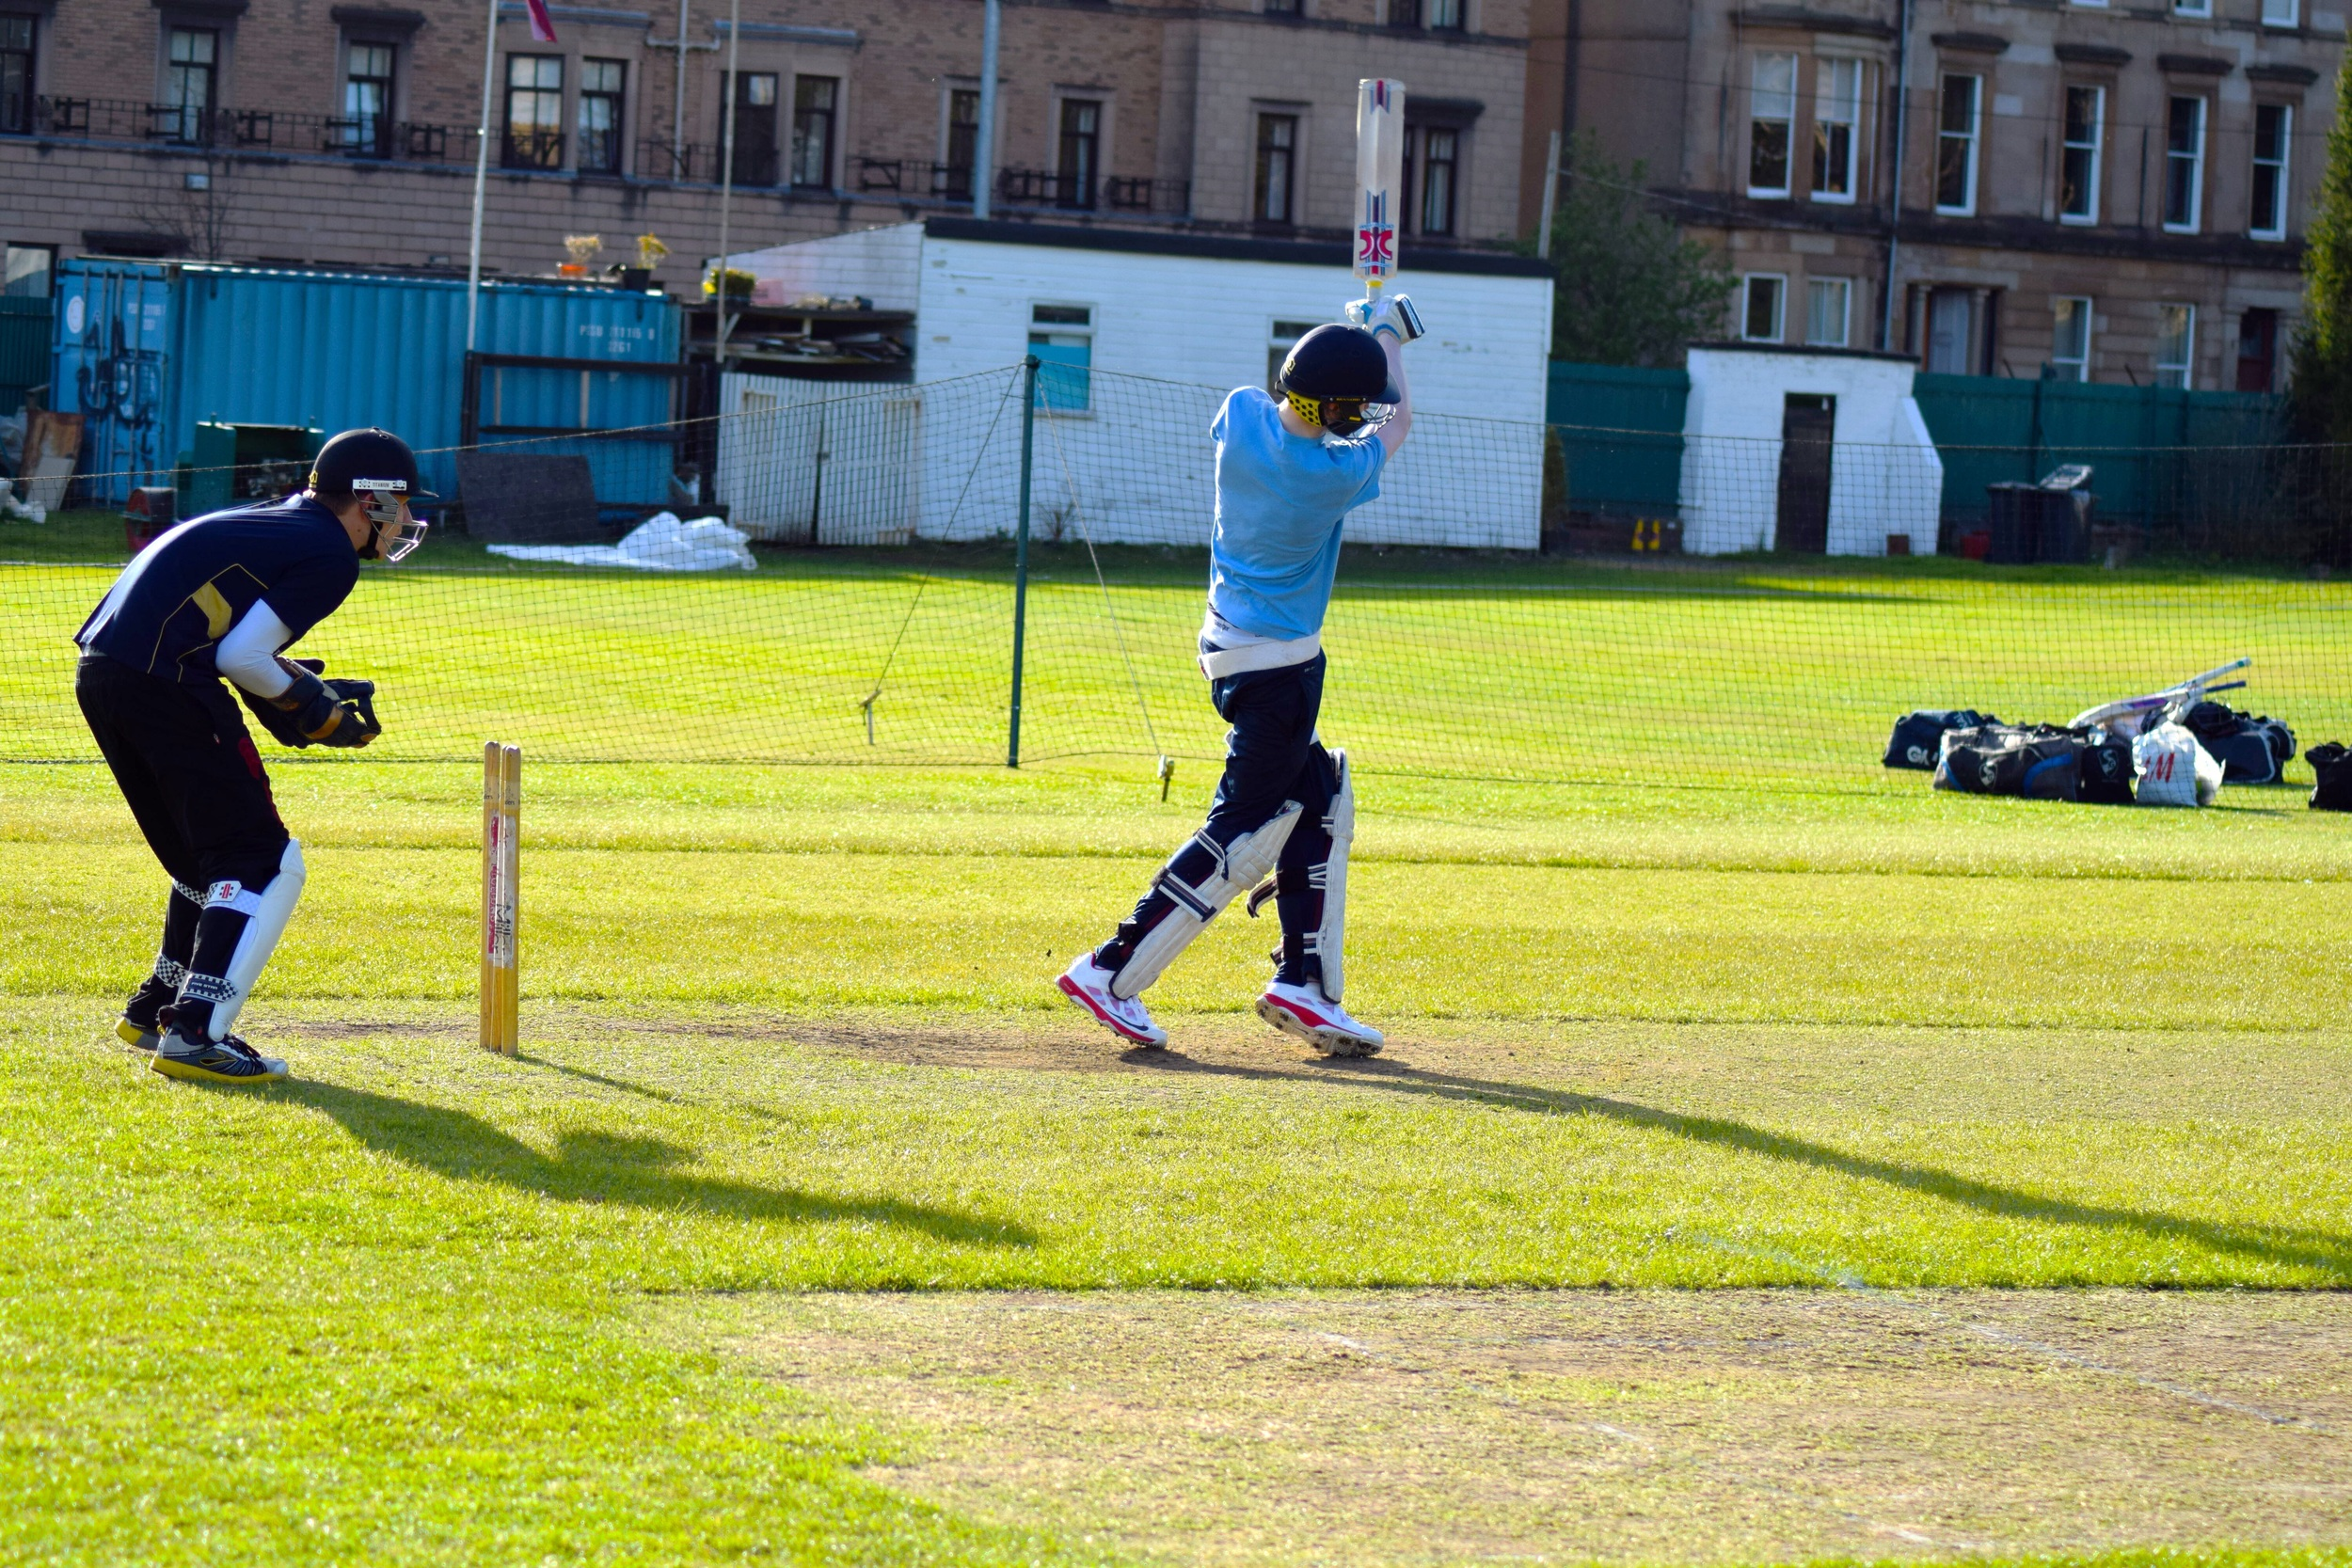 Middle wicket practice at West of Scotland Cricket Club